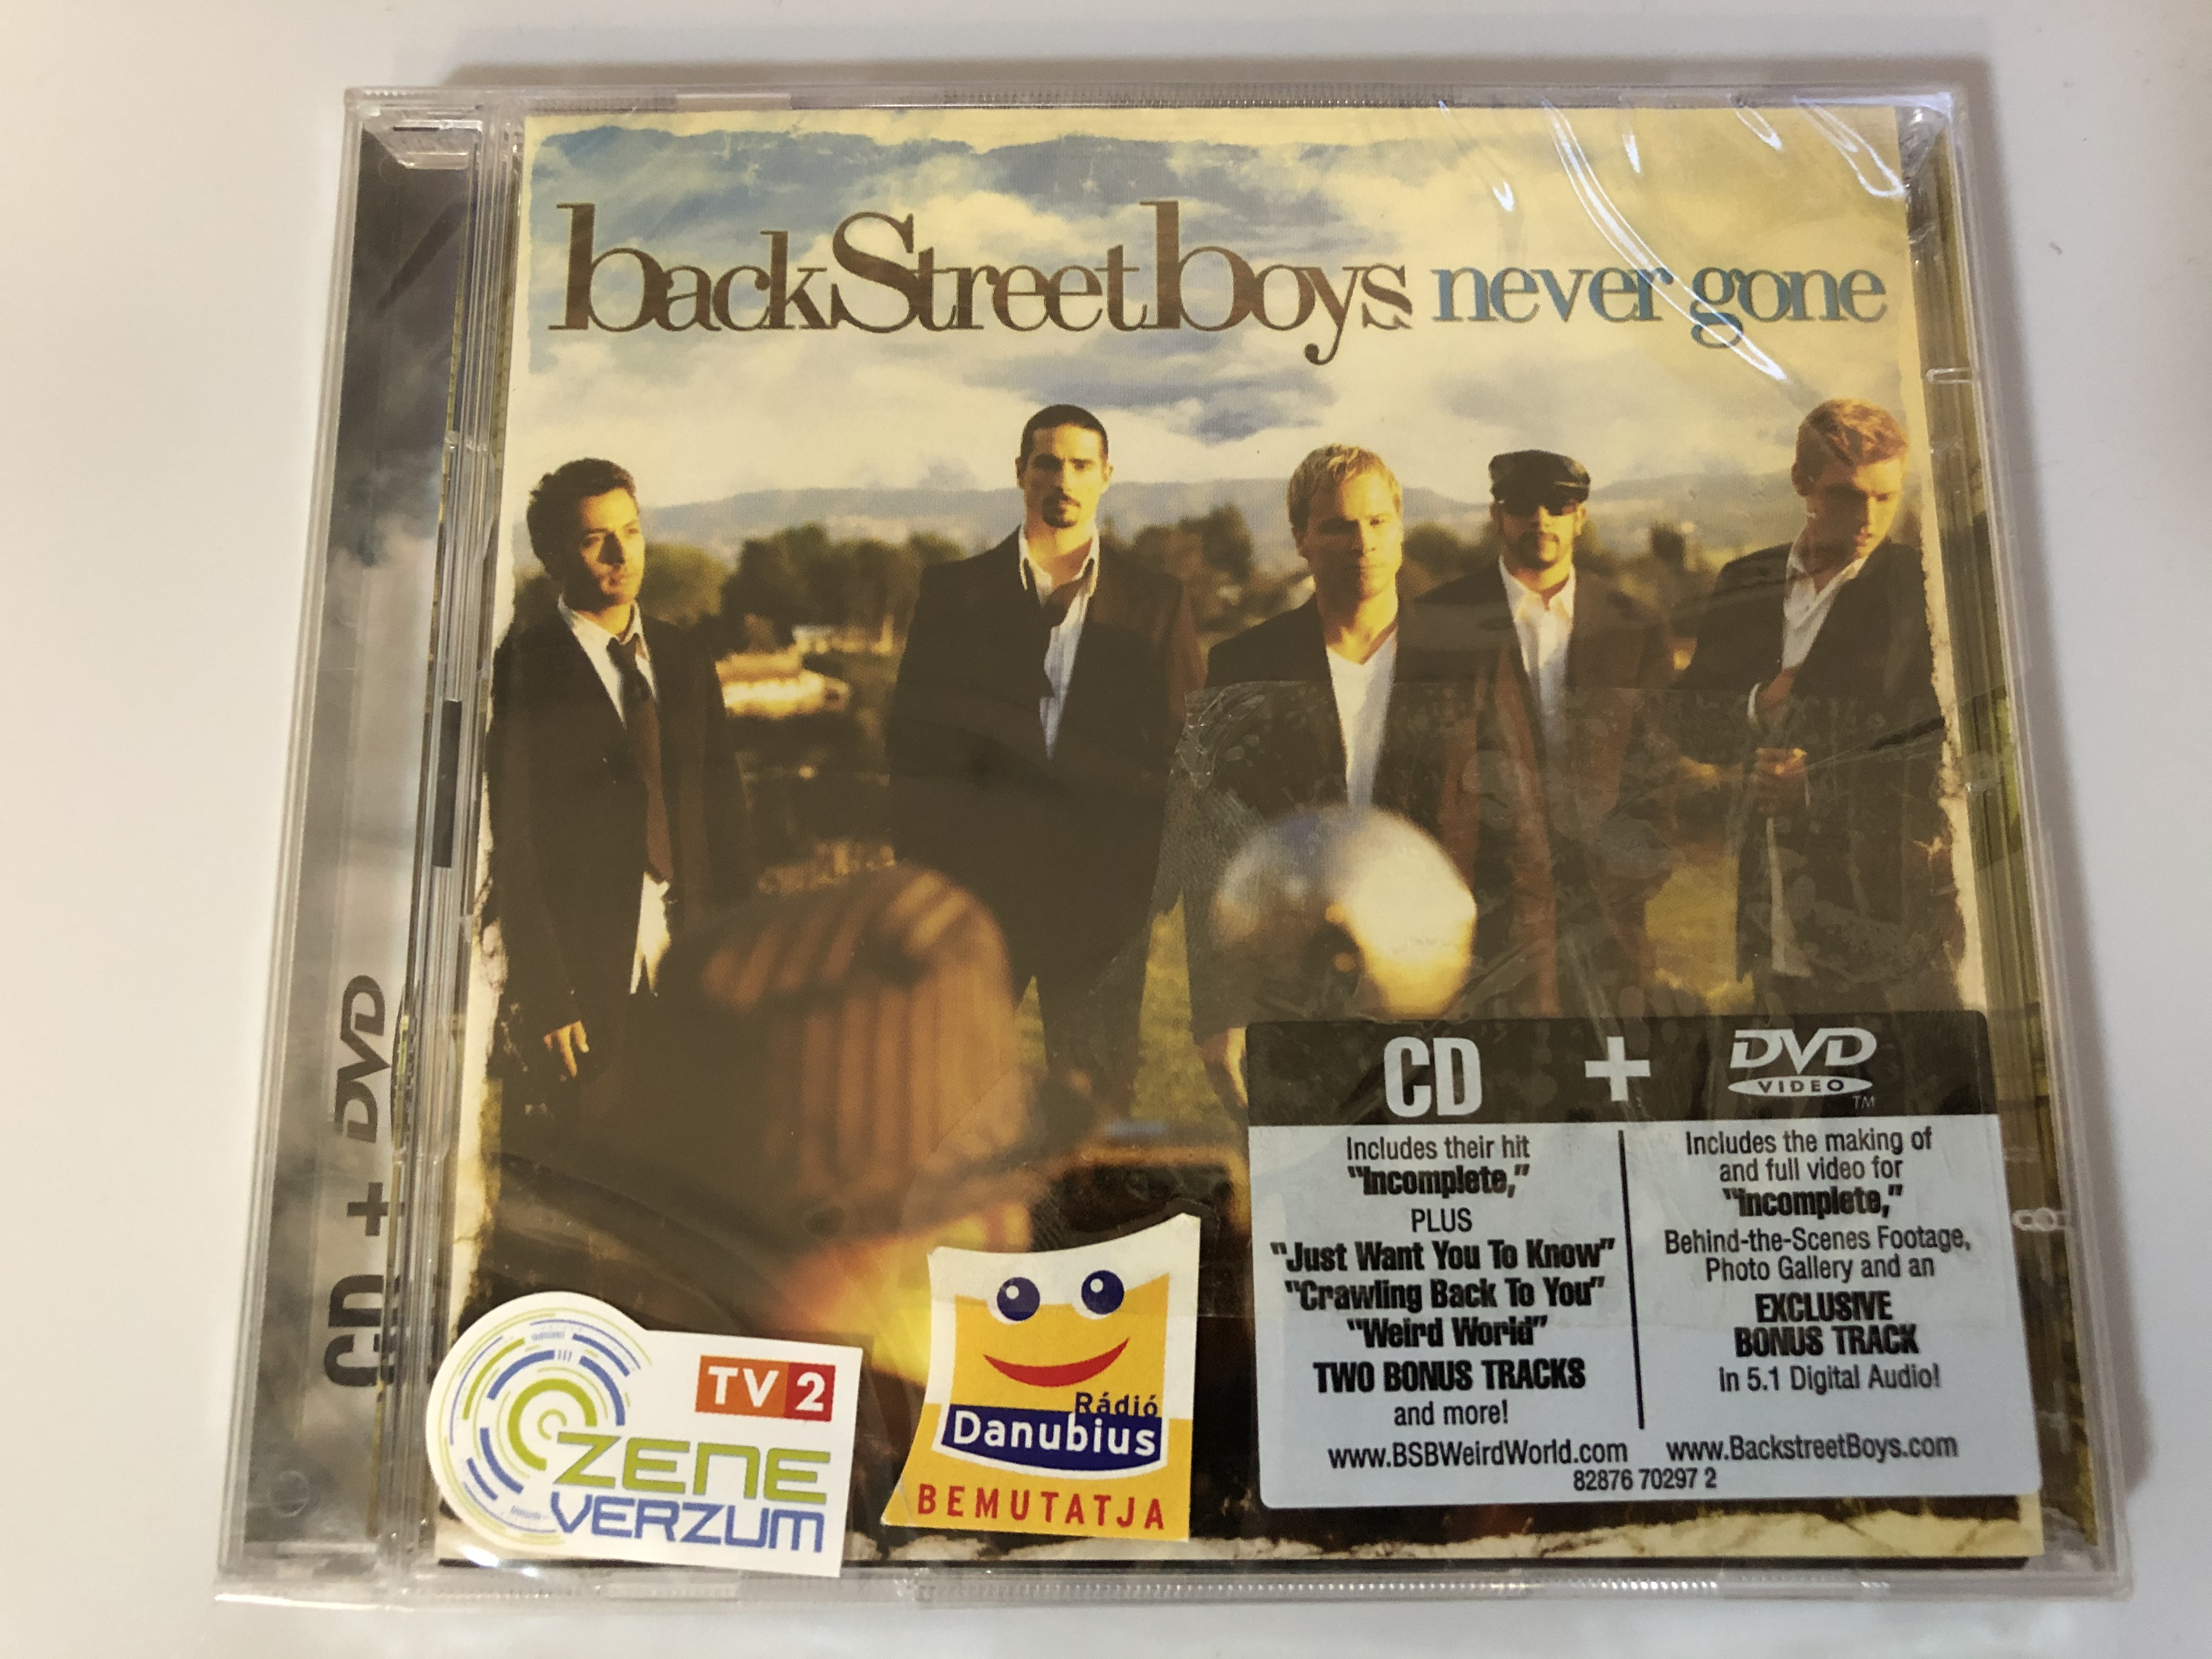 backstreet-boys-never-gone-cd-includes-their-hit-incomplete-plus-just-want-you-to-know-dvd-includes-the-making-of-and-full-video-for-incomplete-jive-audio-cd-dvd-cd-2005-1-.jpg